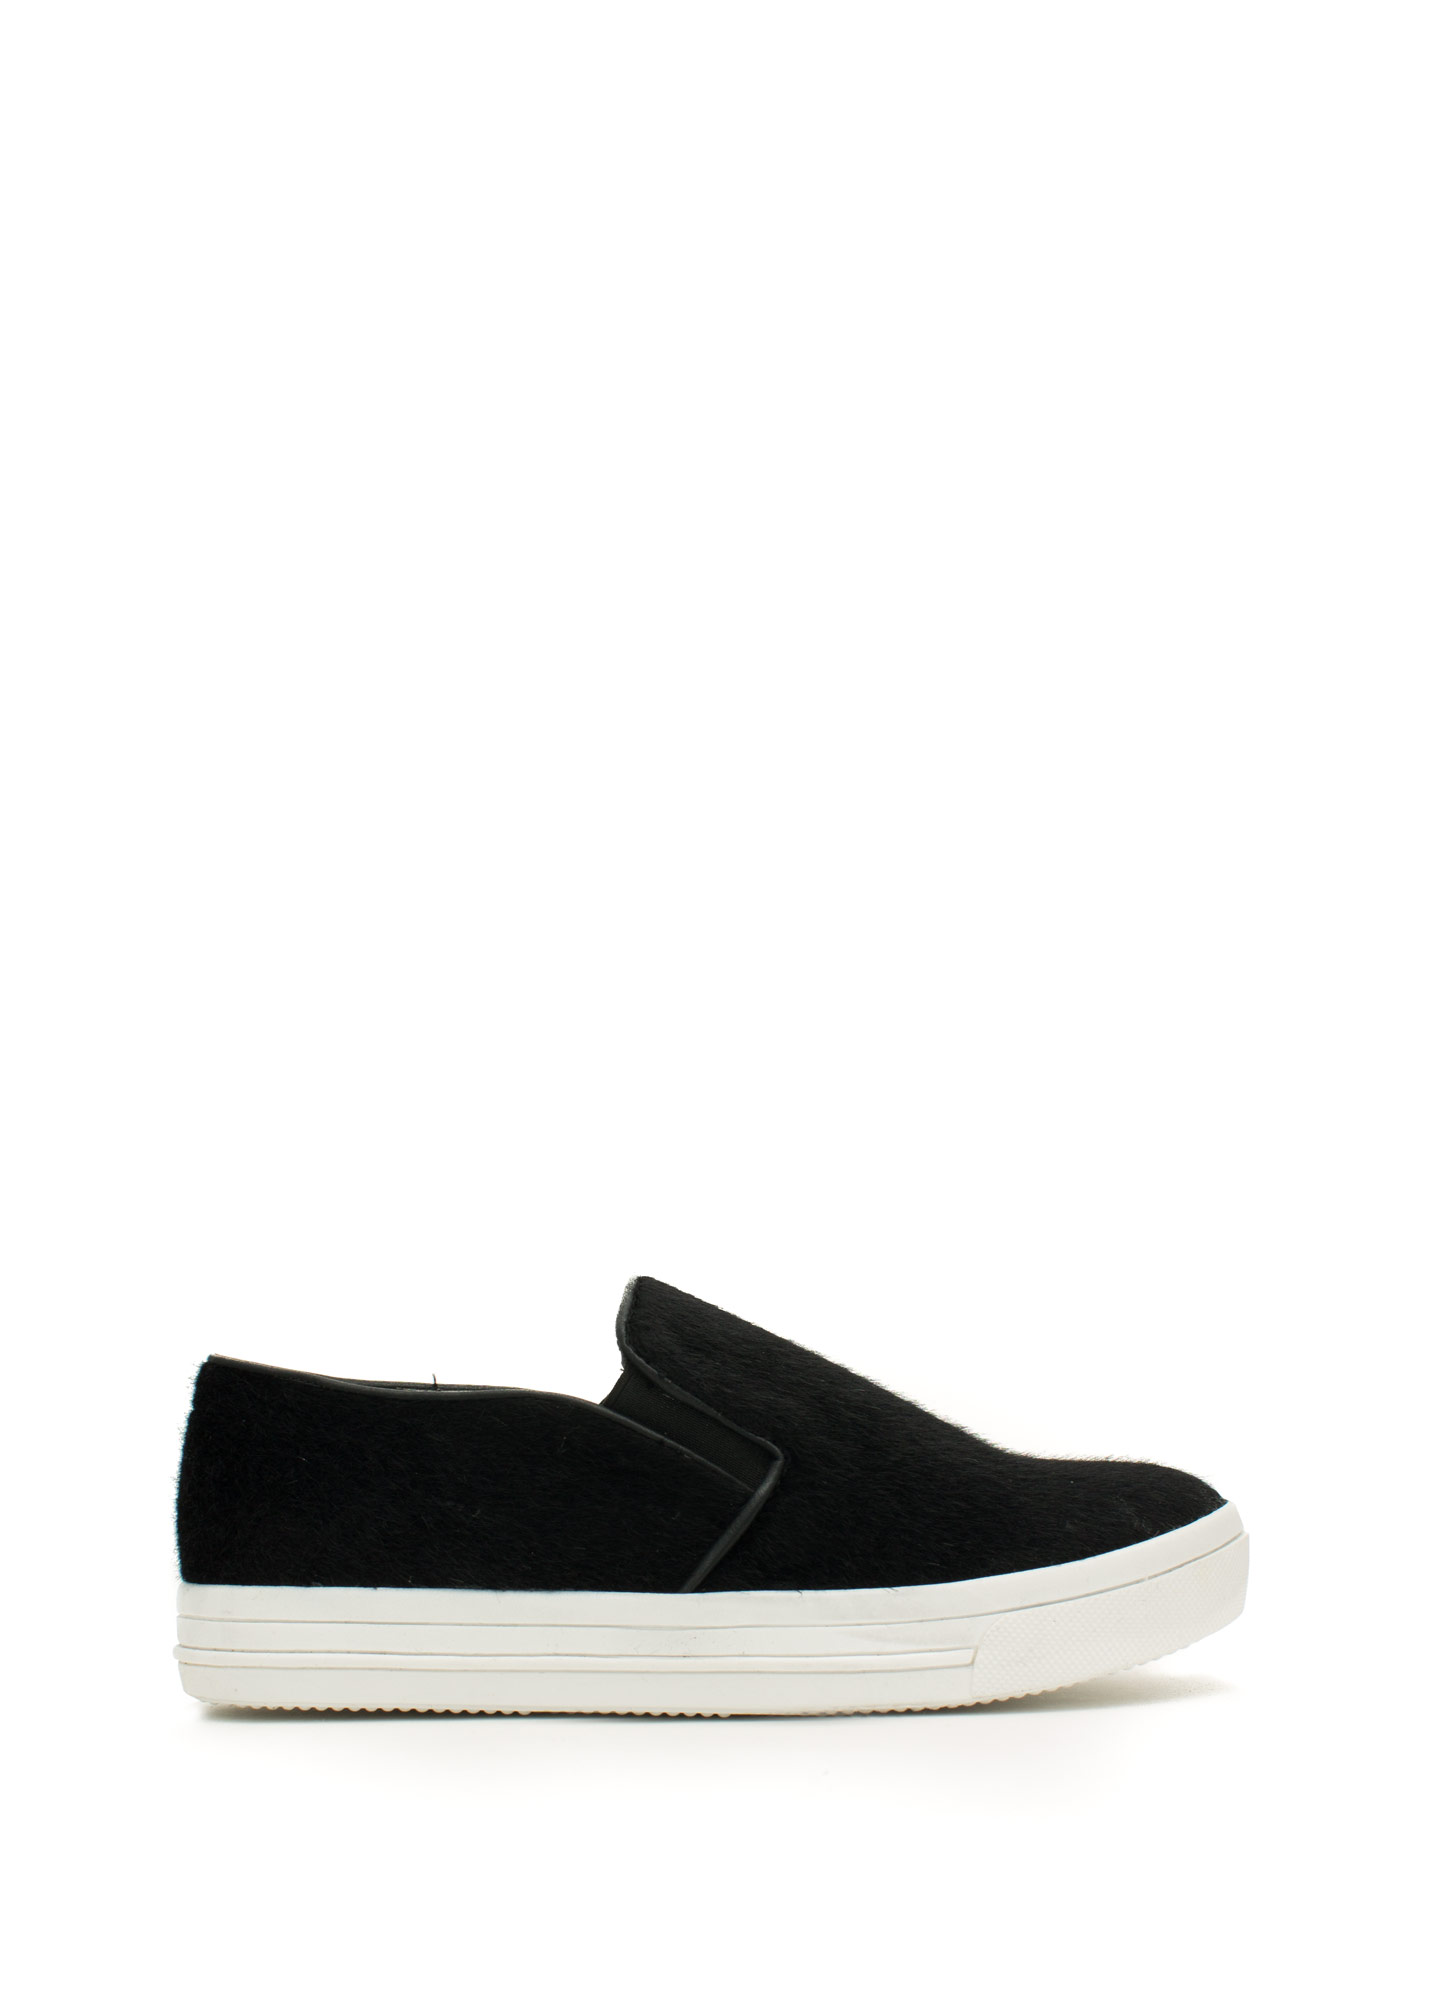 Furry Piped Slip-On Sneakers BLACK